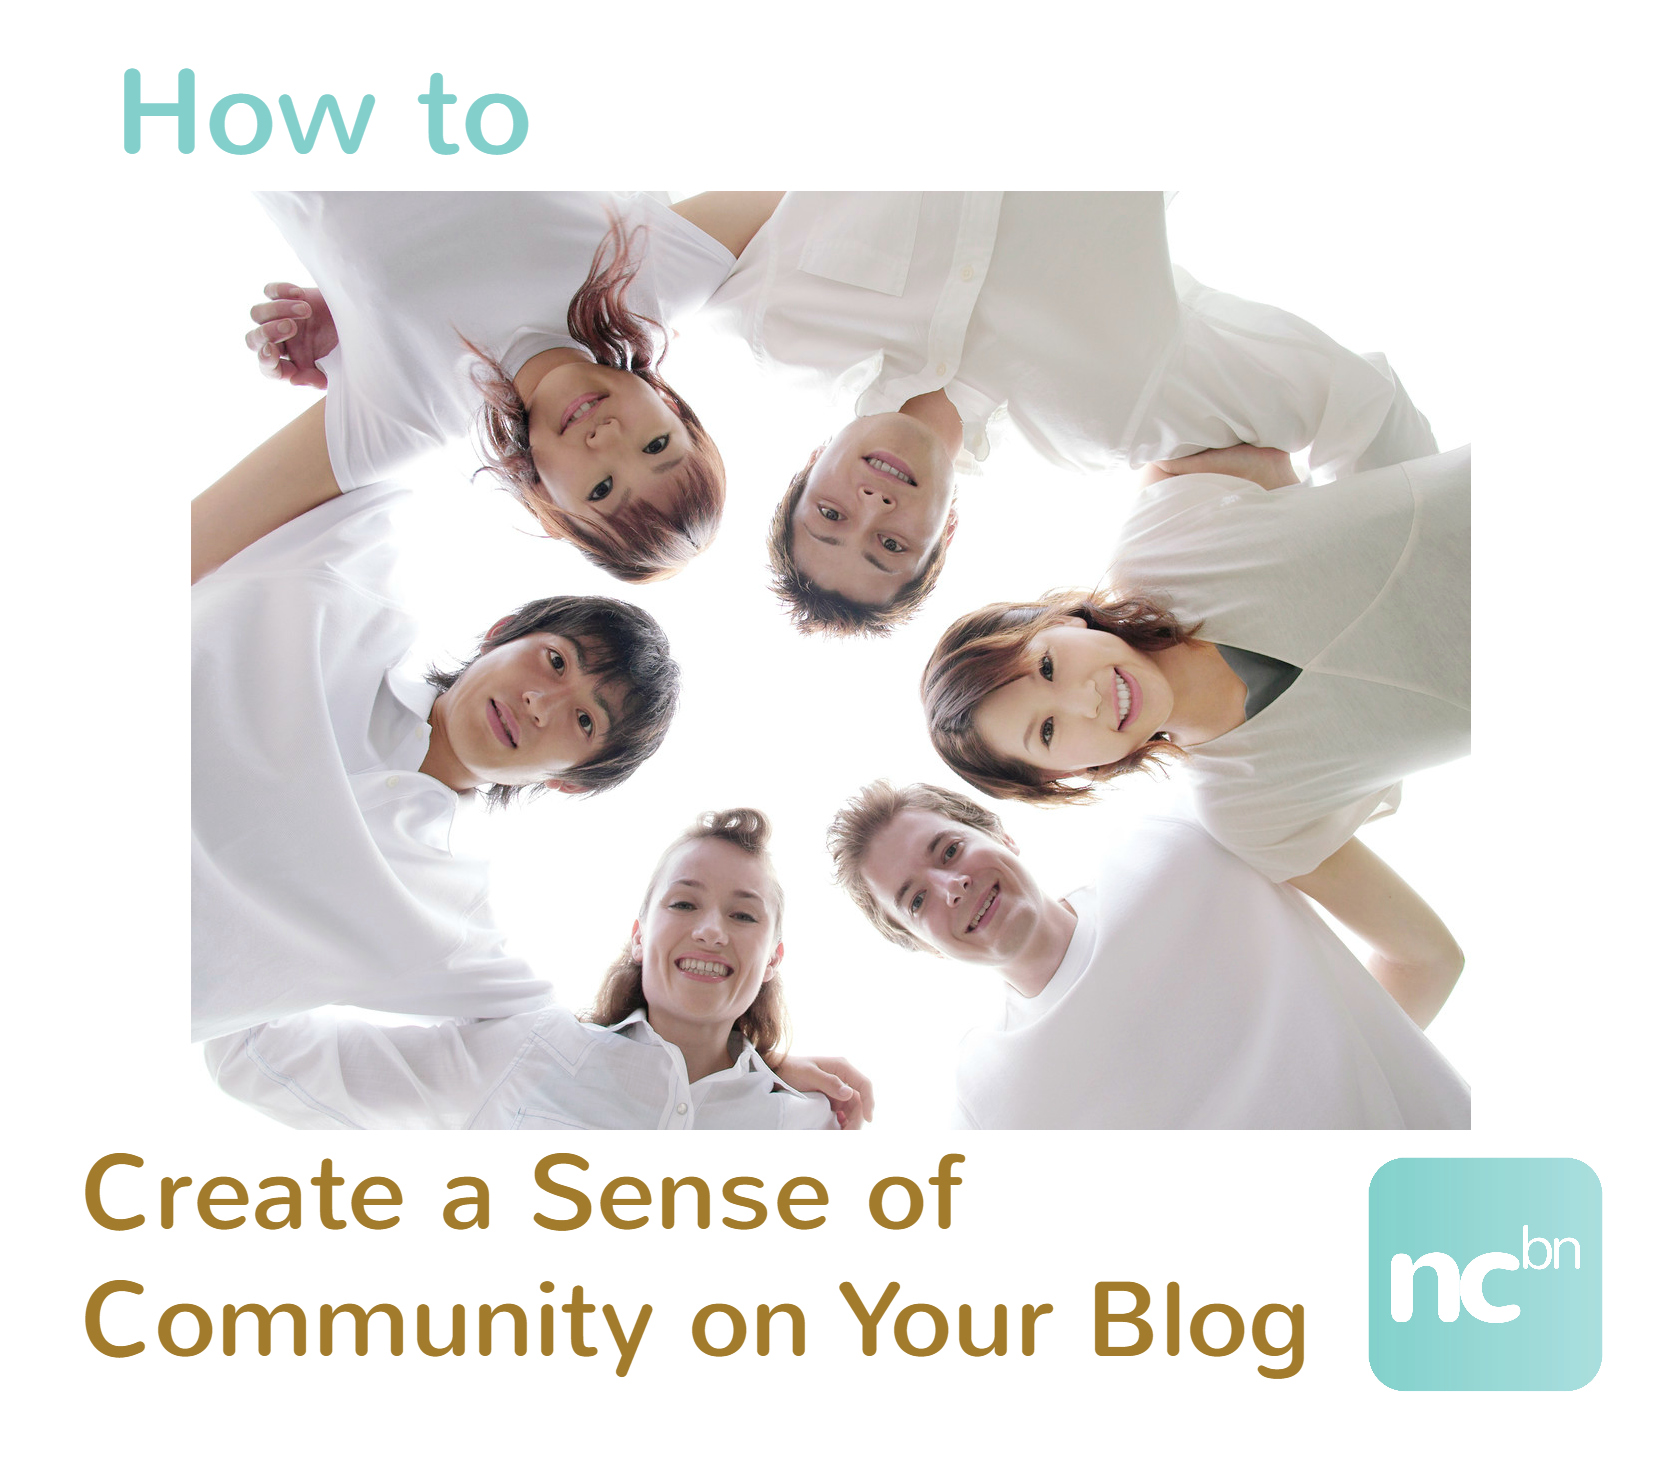 Top 5 Tips for Creating a Sense of Community on Your Blog